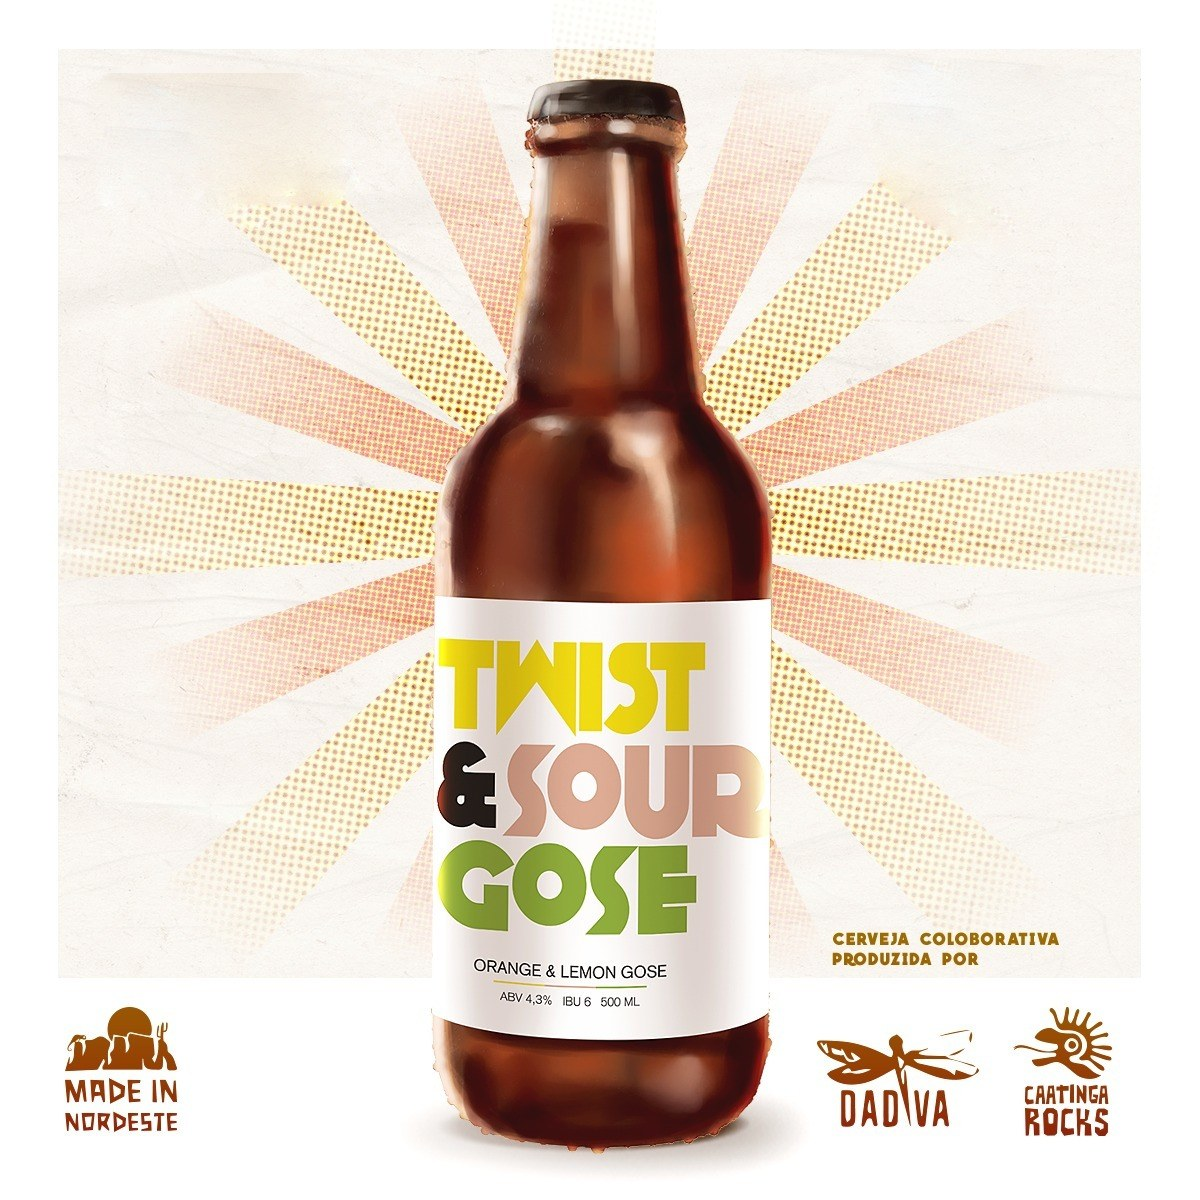 Cerveja Caatinga Rocks Twist & Sour 500ml